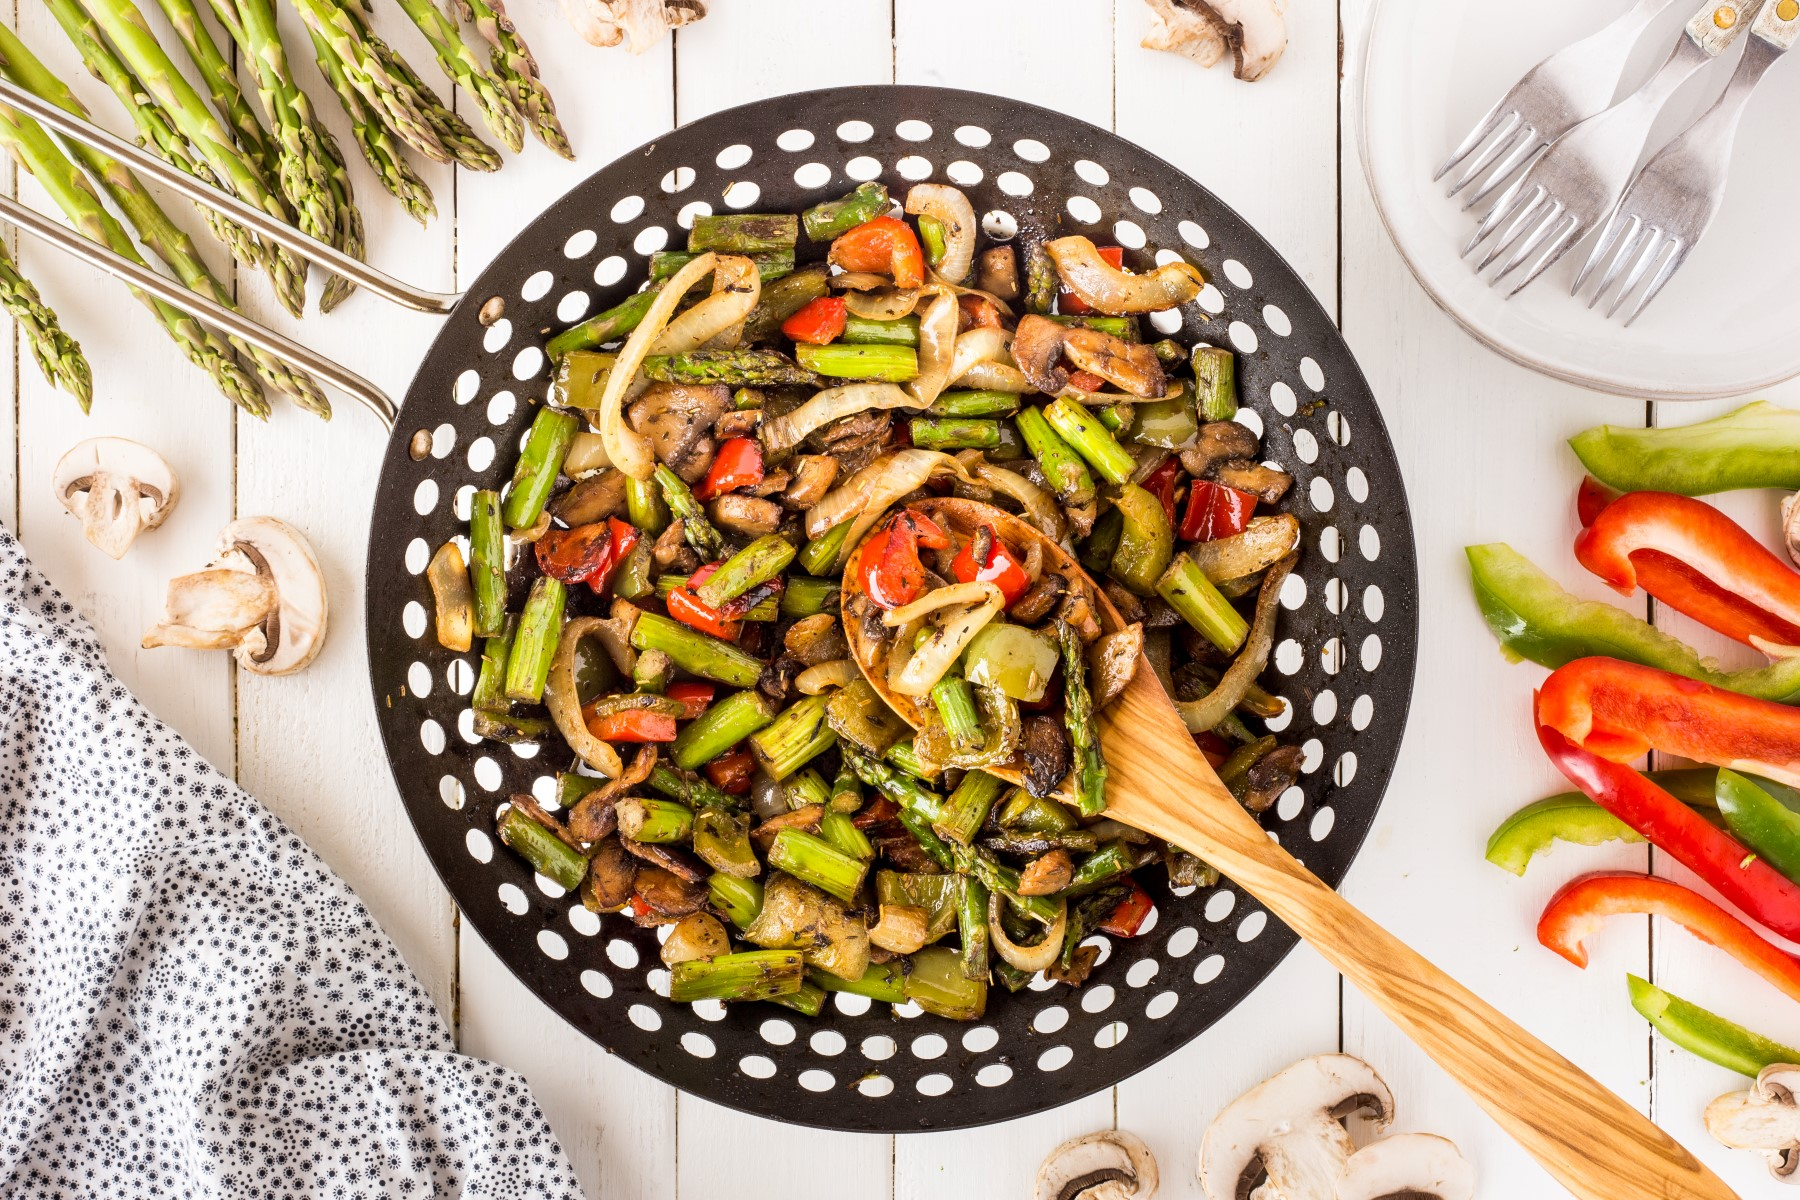 Cooked BBQ wok vegetables on a wooden board with a wooden spoon scooping out a spoonful